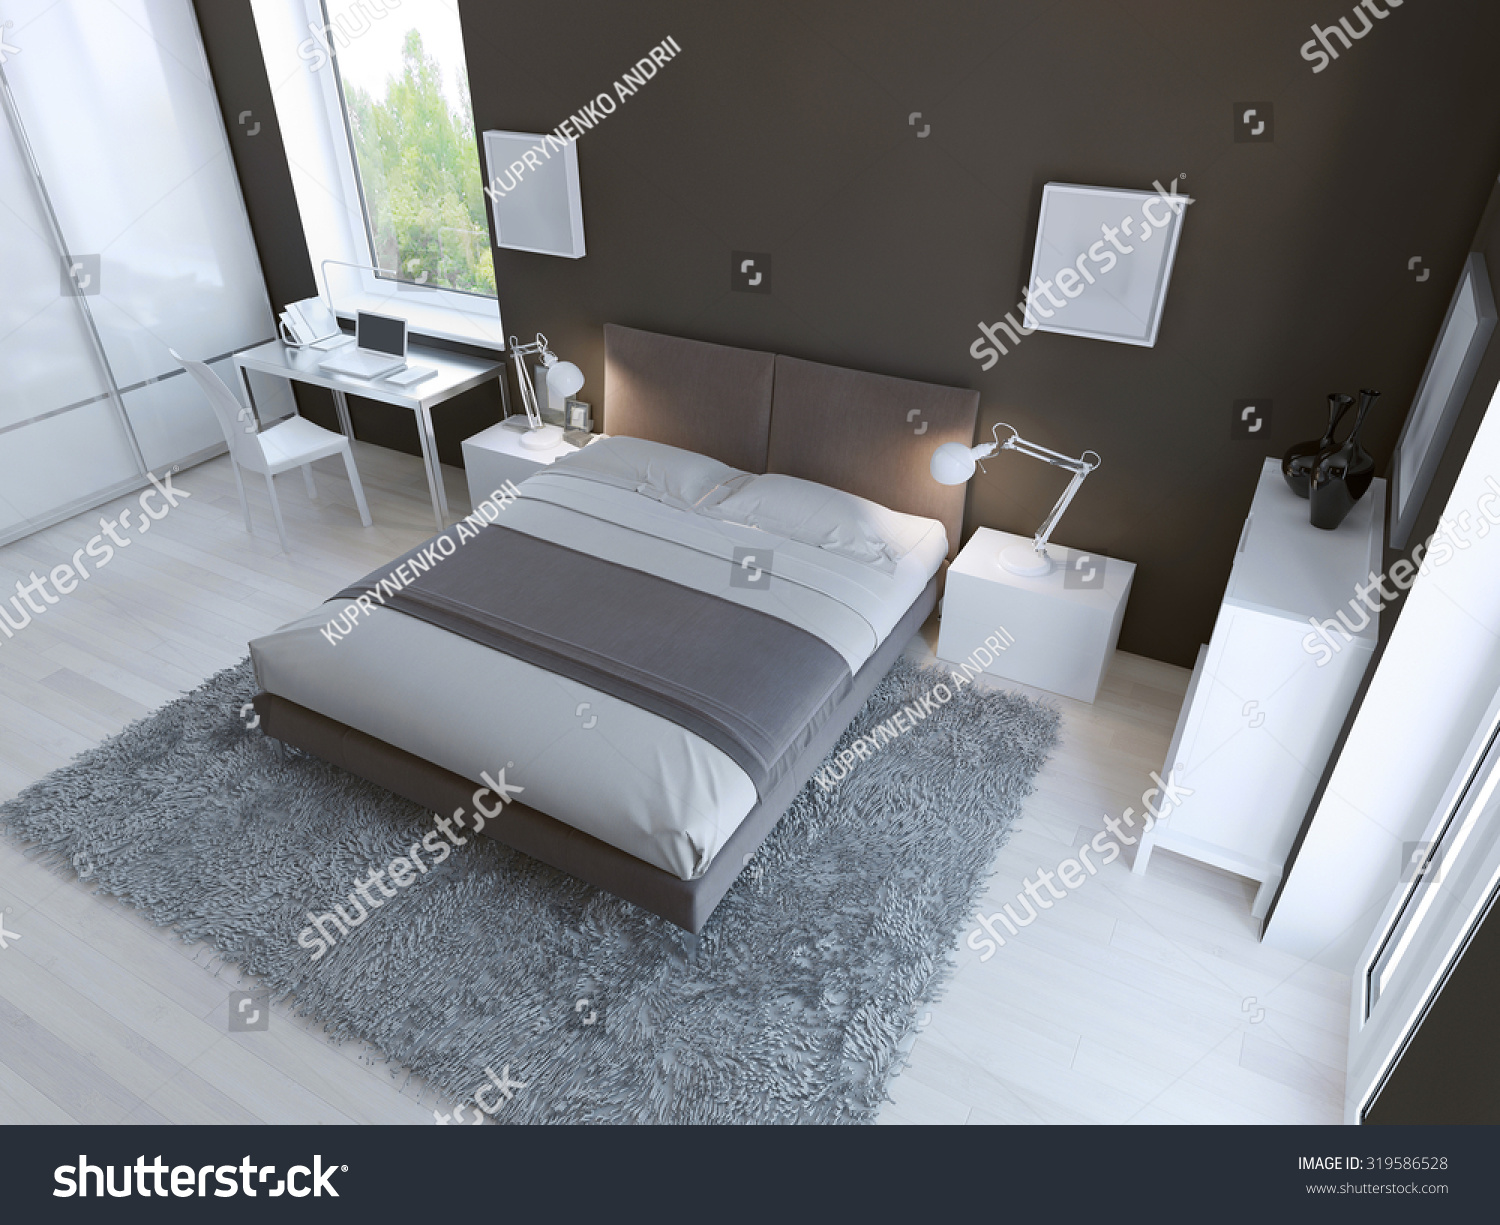 hightech bedroom interior thick pile carpet stock illustration